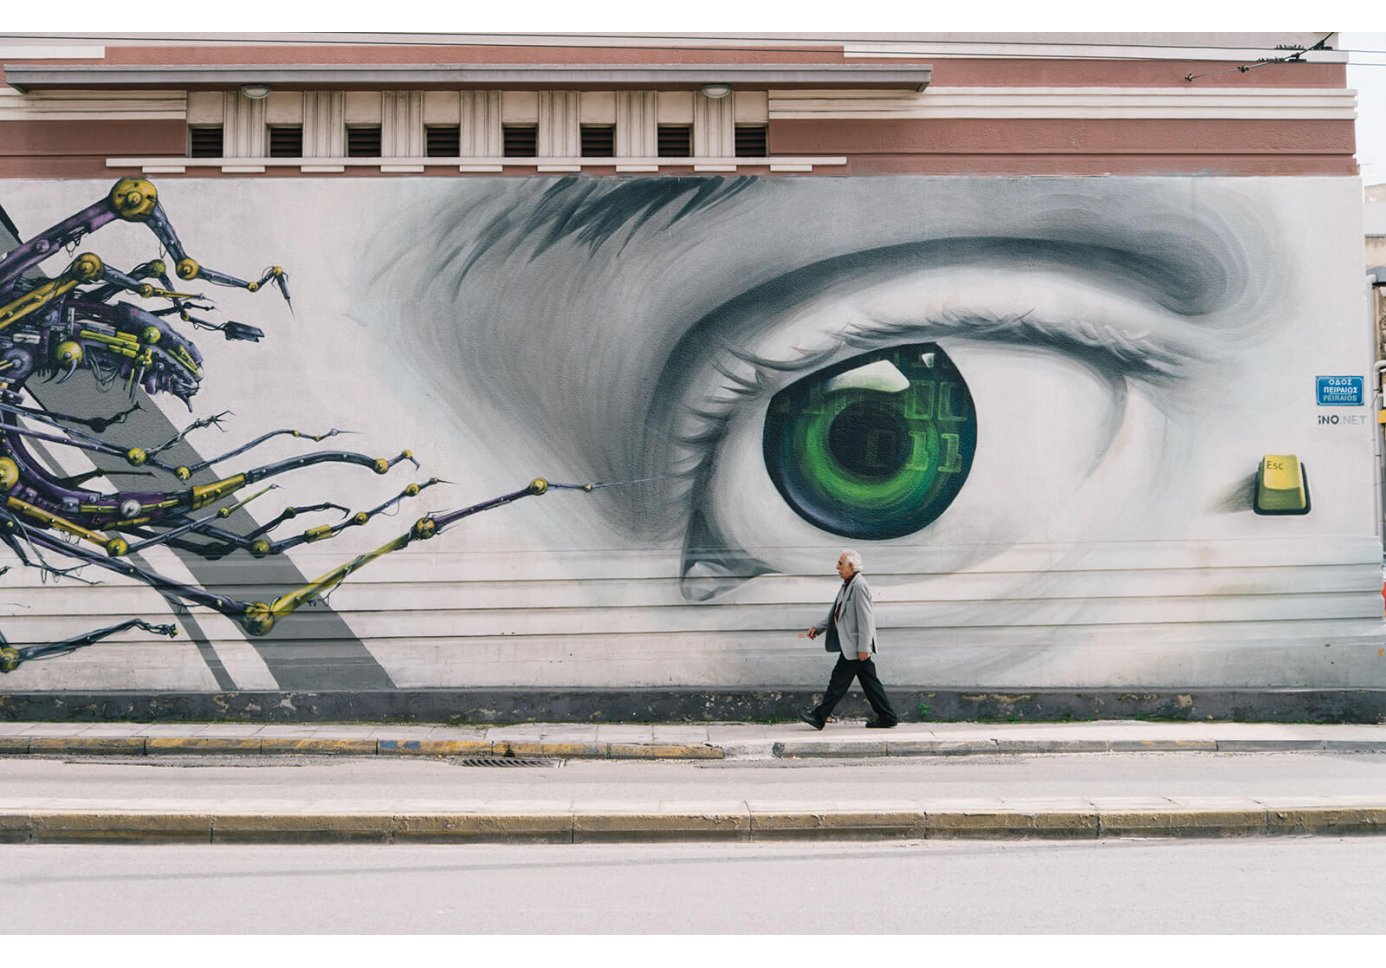 graffiti of a green eye on a wall and a person walking by.